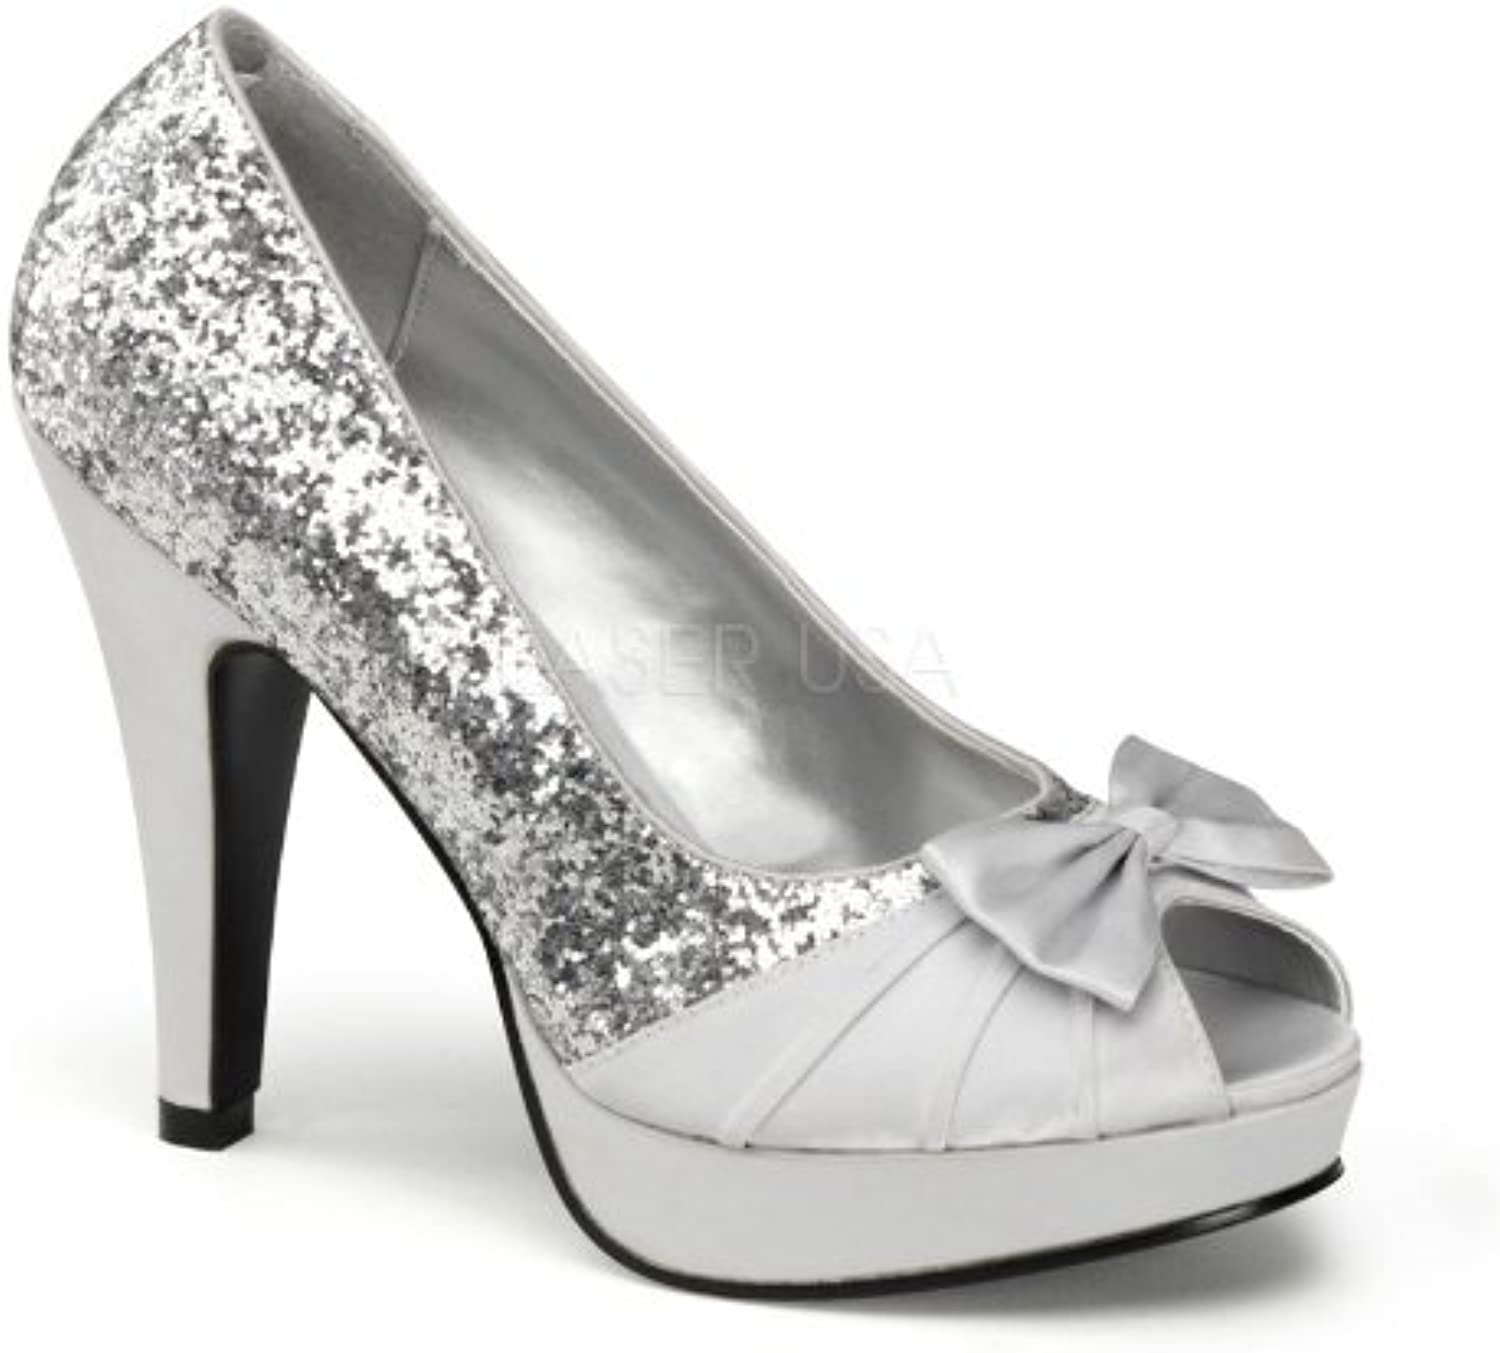 PINUP COUTURE BETTIE-10 4 1 2  Heel, 1  P F Open Toe Pump W  Bow Detail At Toe